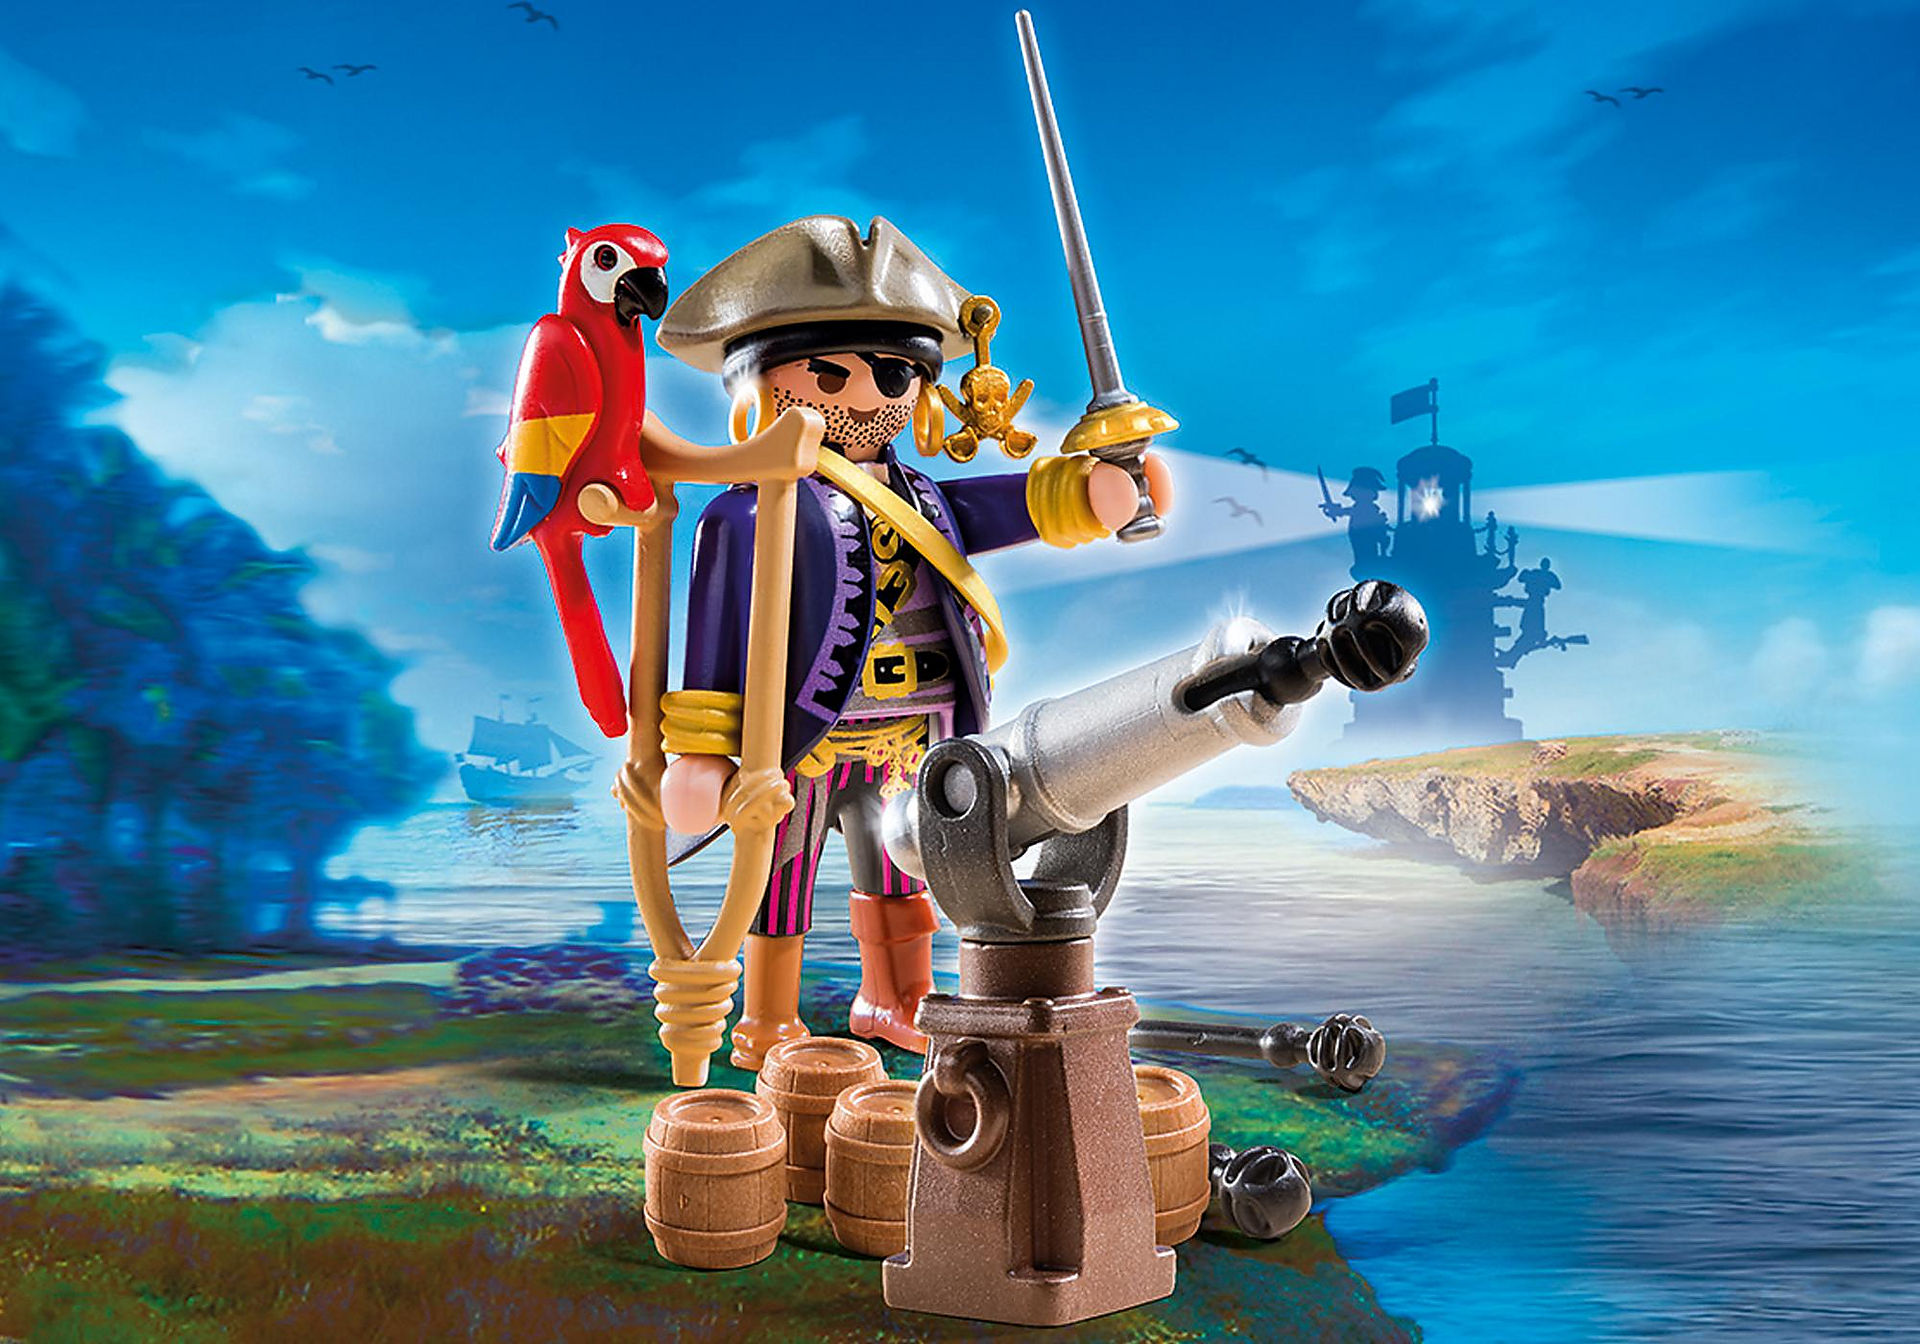 http://media.playmobil.com/i/playmobil/6684_product_detail/Kapitan piratów